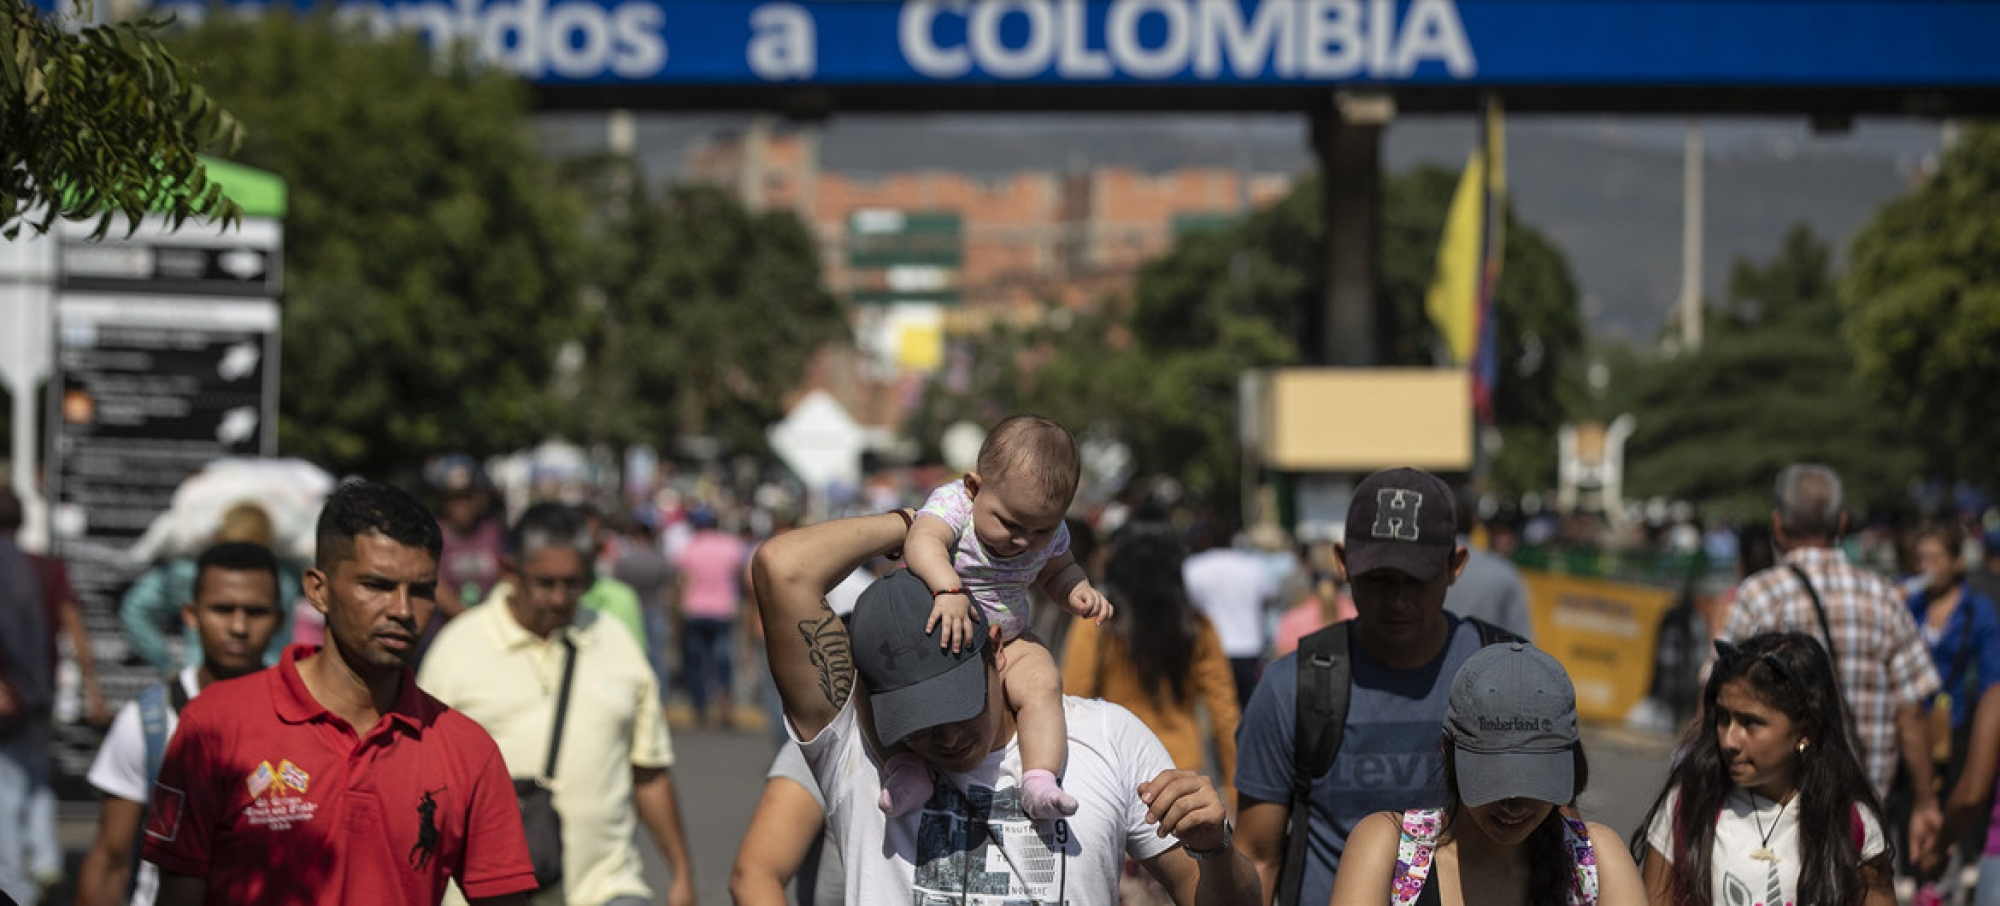 file photo: Venezuelan refugees and migrants cross the Simon Bolivar Bridge into Colombia